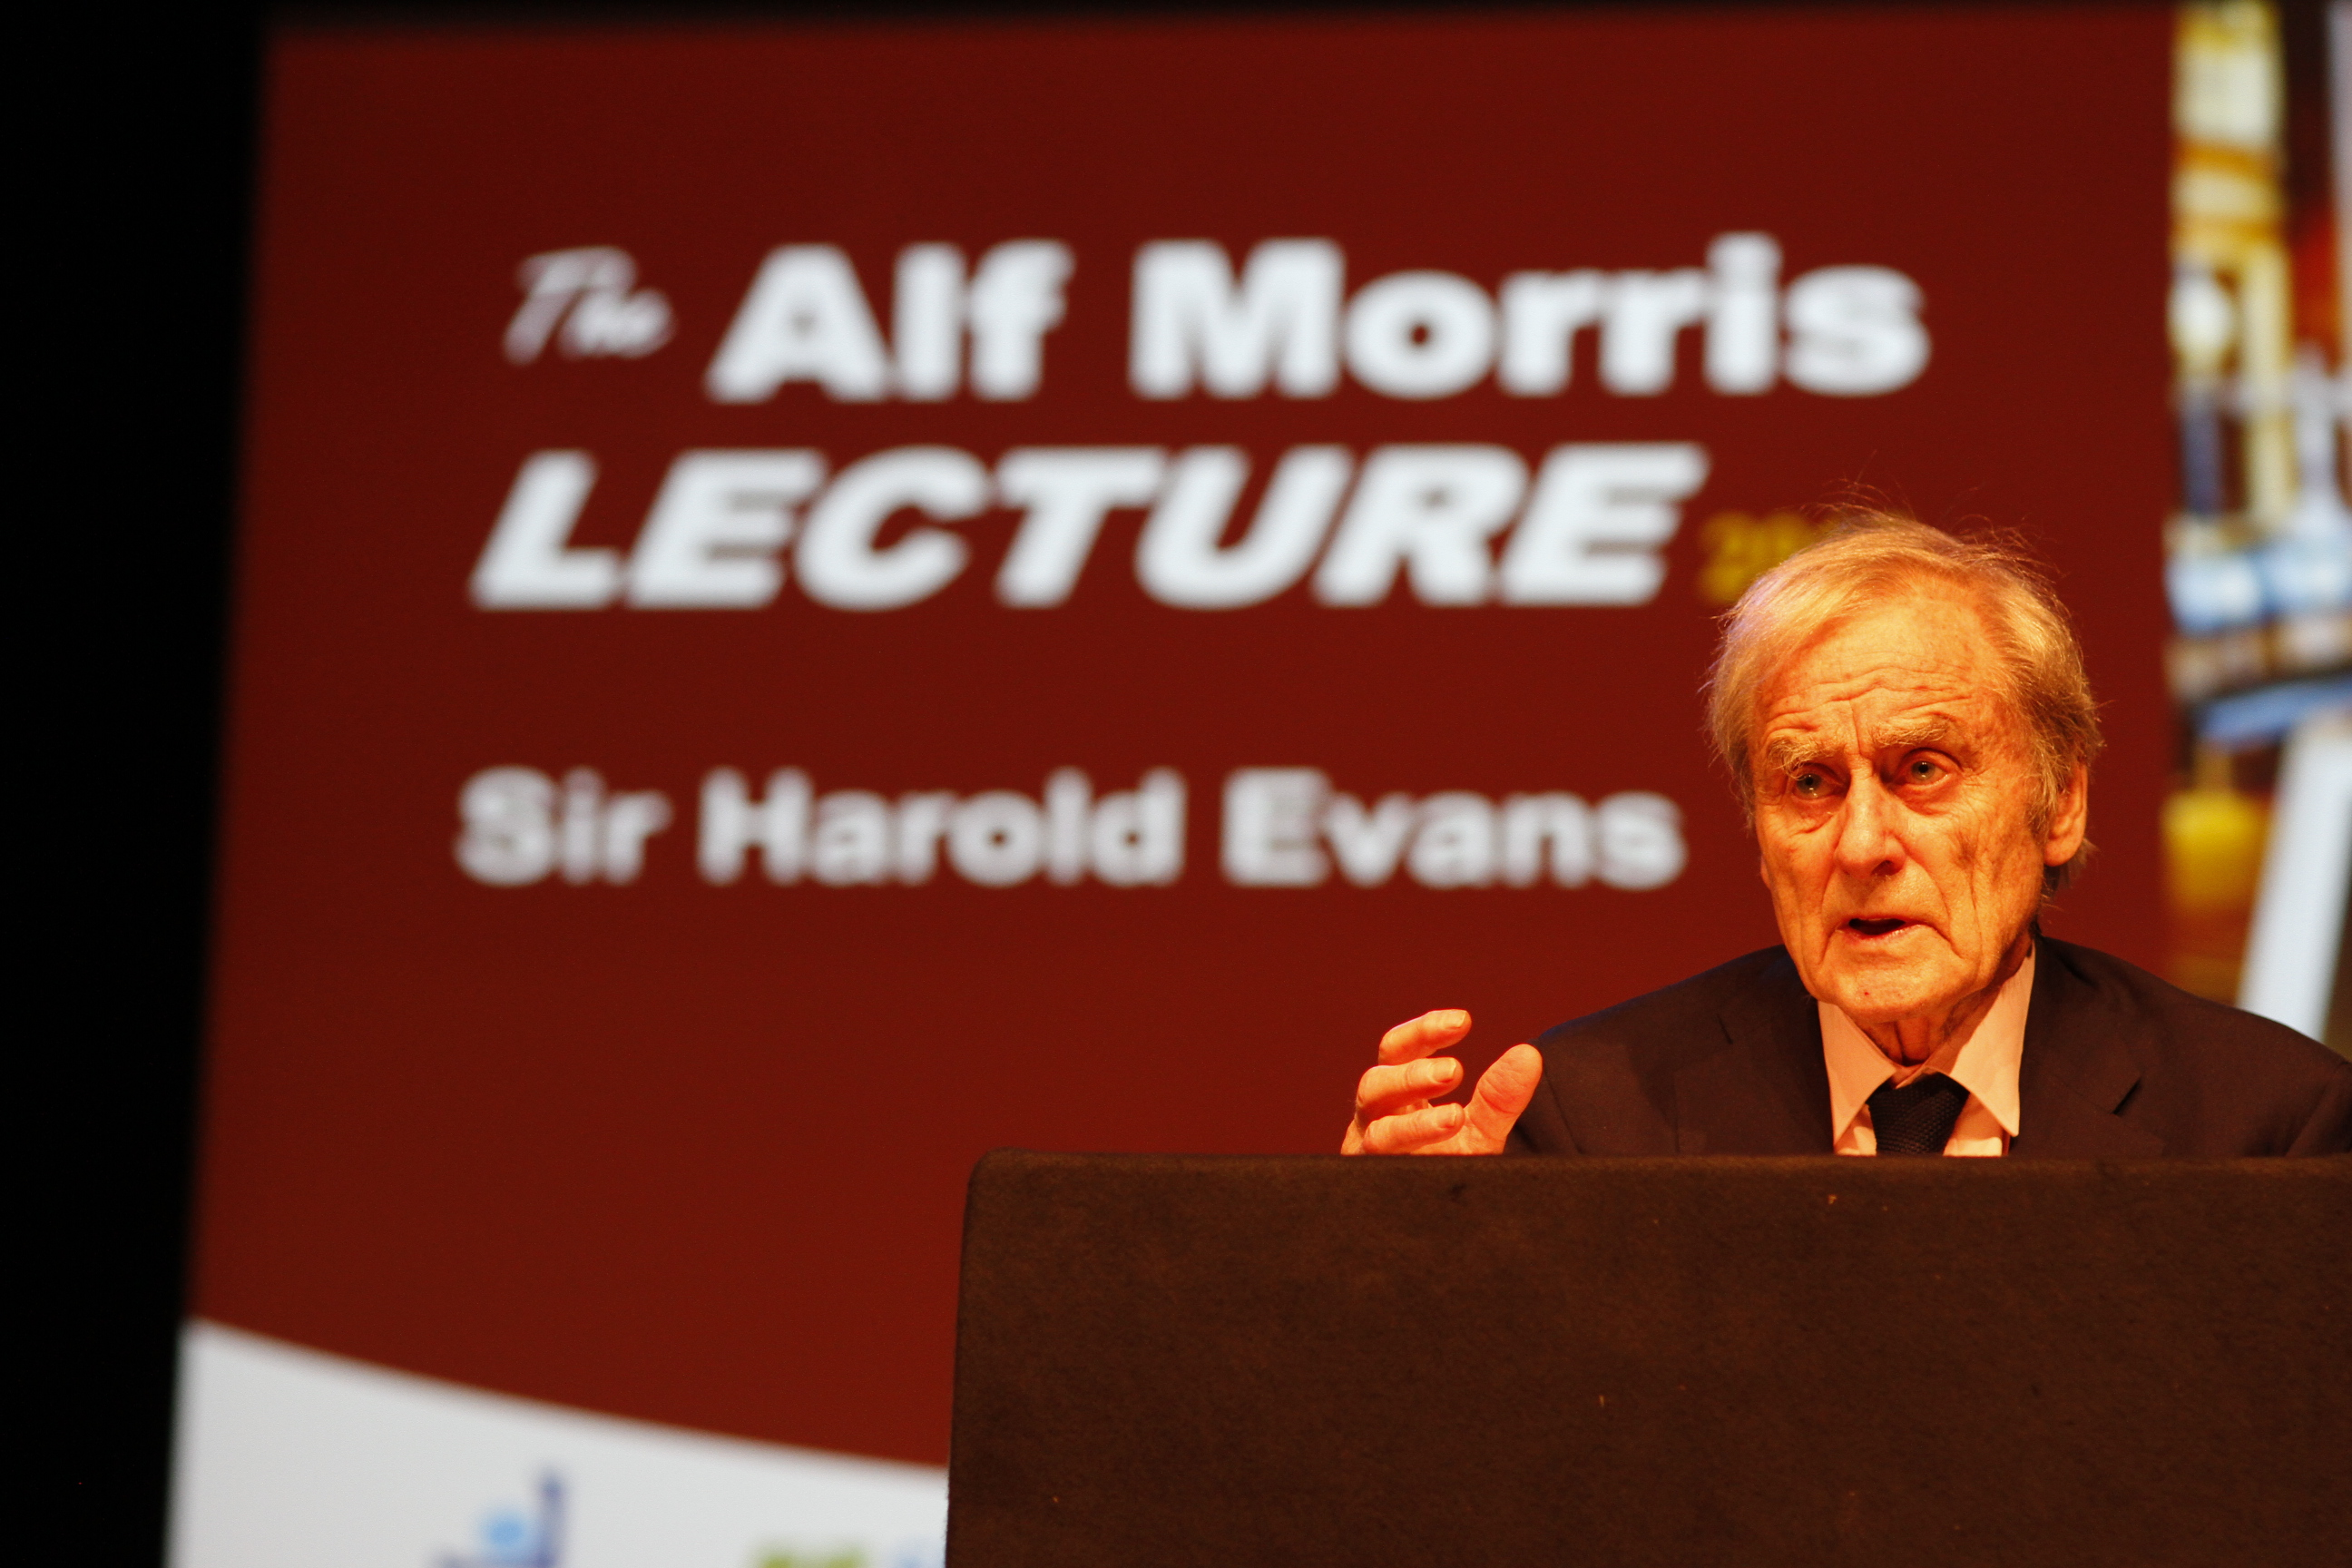 Time for new thinking urges Sir Harold Evans at the first Alf Morris lecture